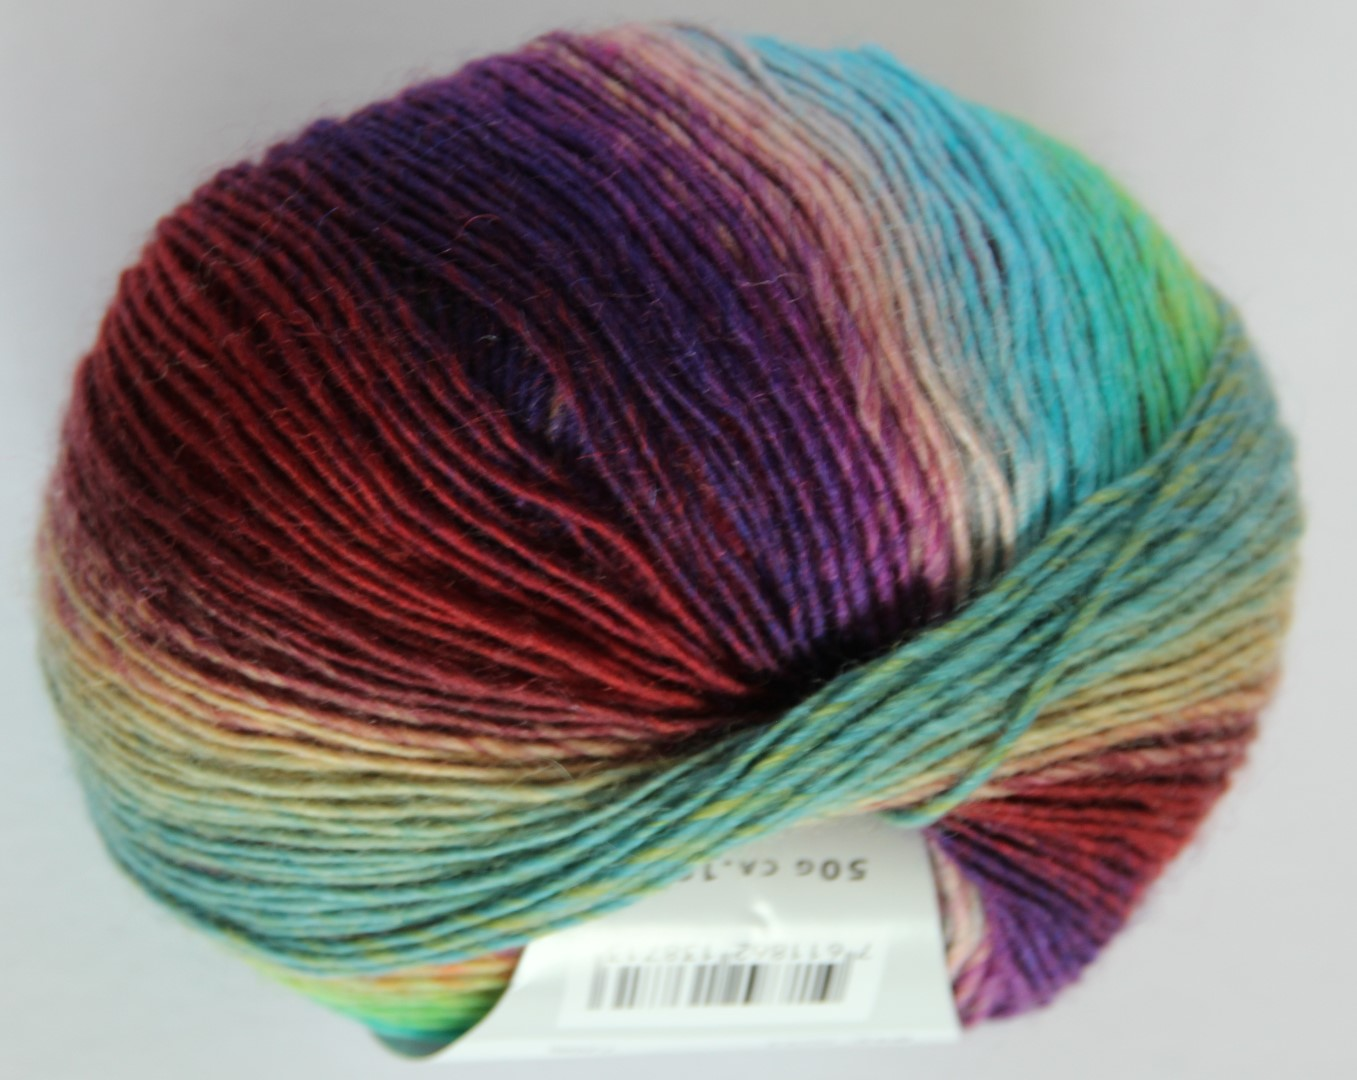 mille colori baby coloris 53 lang yarns - Laine Lang Mille Colori Baby